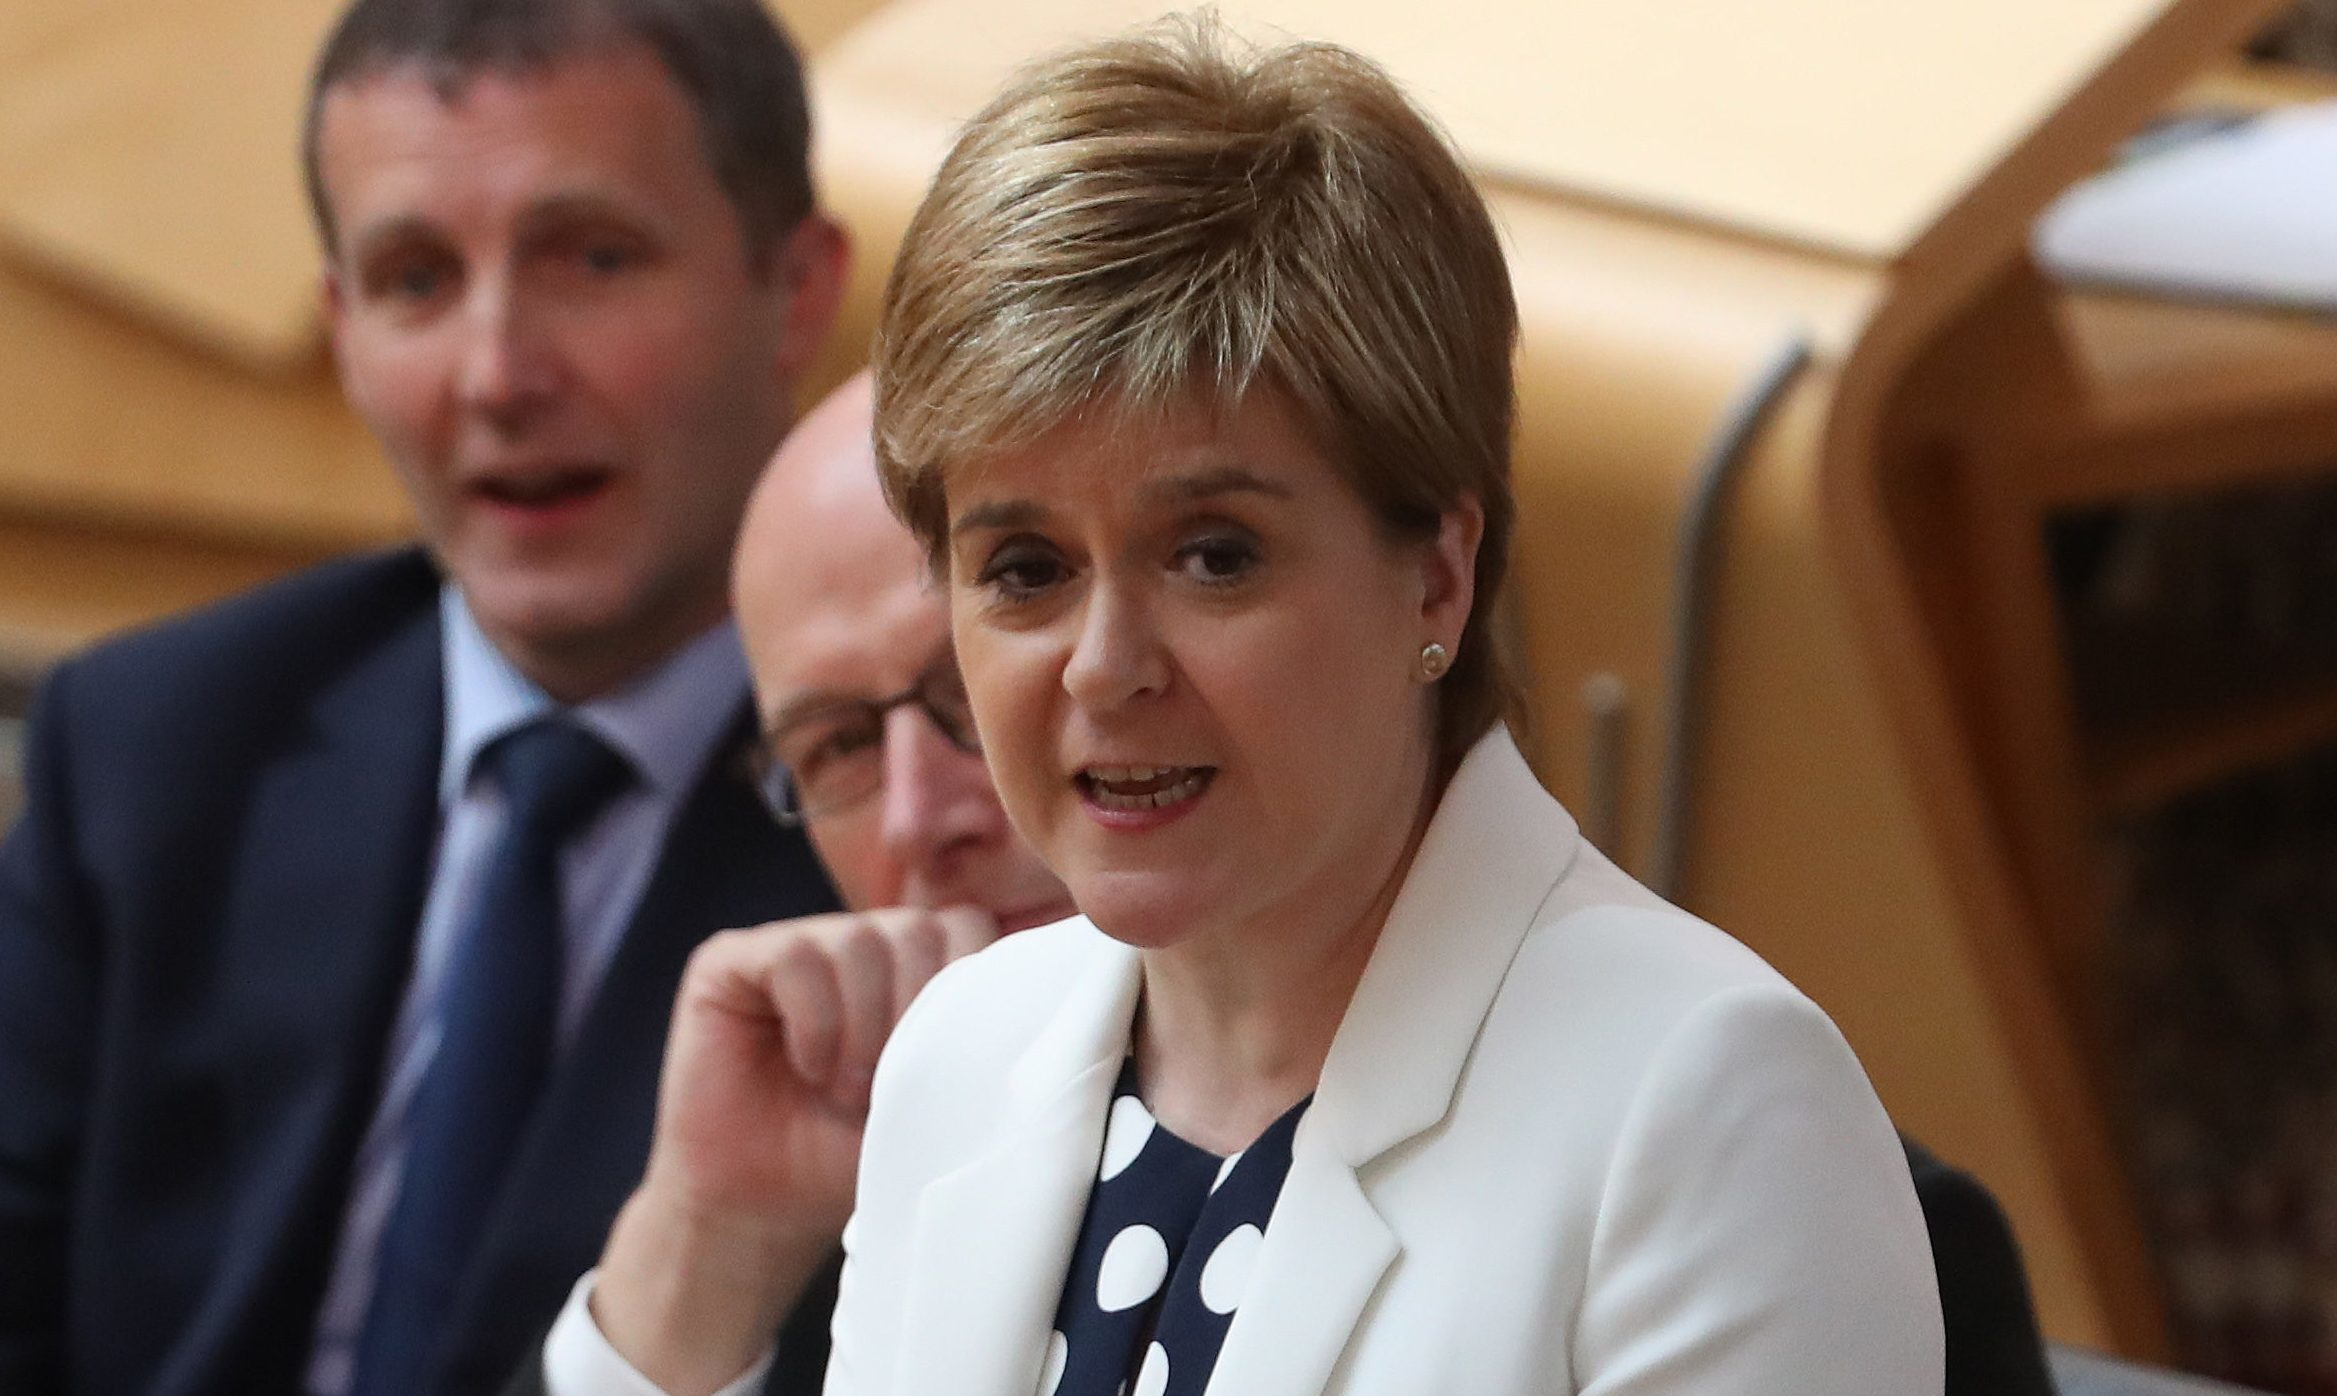 First Minister Nicola Sturgeon during FMQs at the Scottish Parliament (Andrew Milligan/PA Wire)